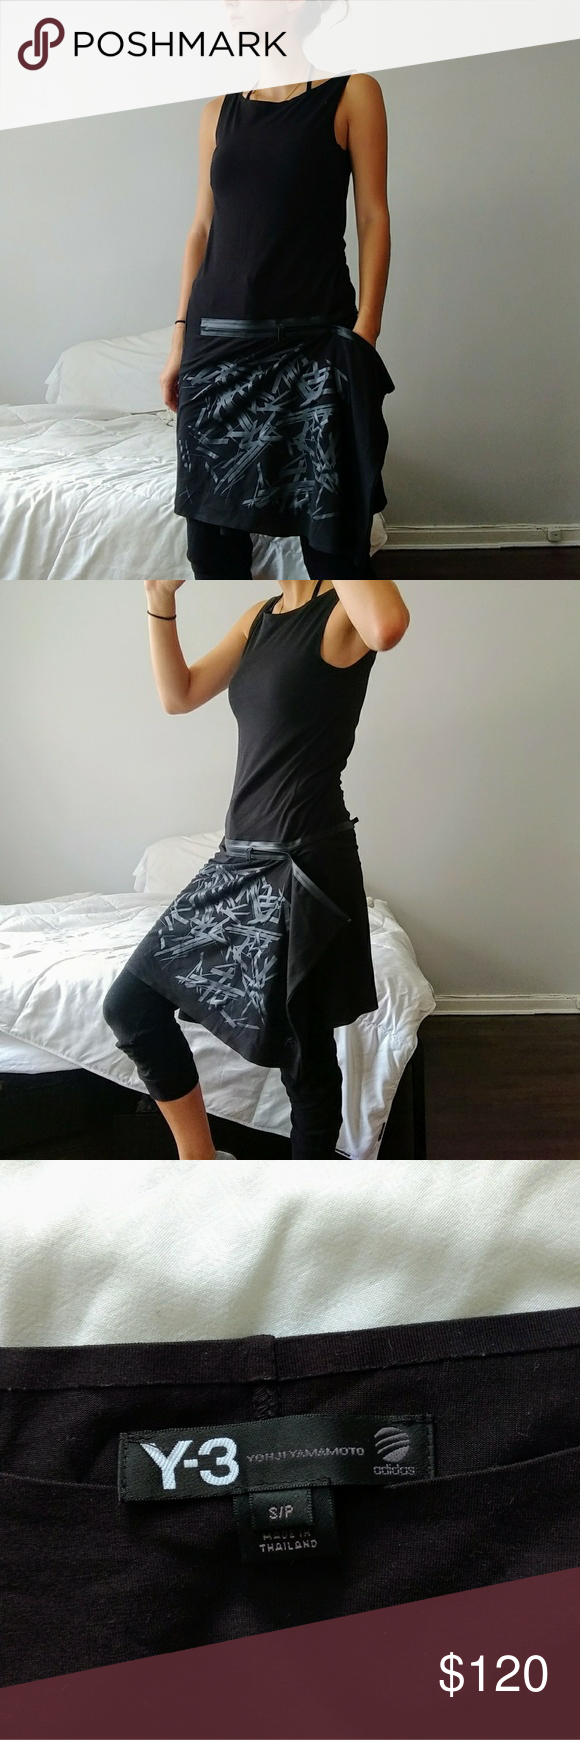 Y-3 ASYMMETRIC EMBOSSED DRESS Asymmetric tank dress with design on front of skirt and zipper to adjust skirt drape. Never worn and in perfect condition. Y-3 Dresses Midi